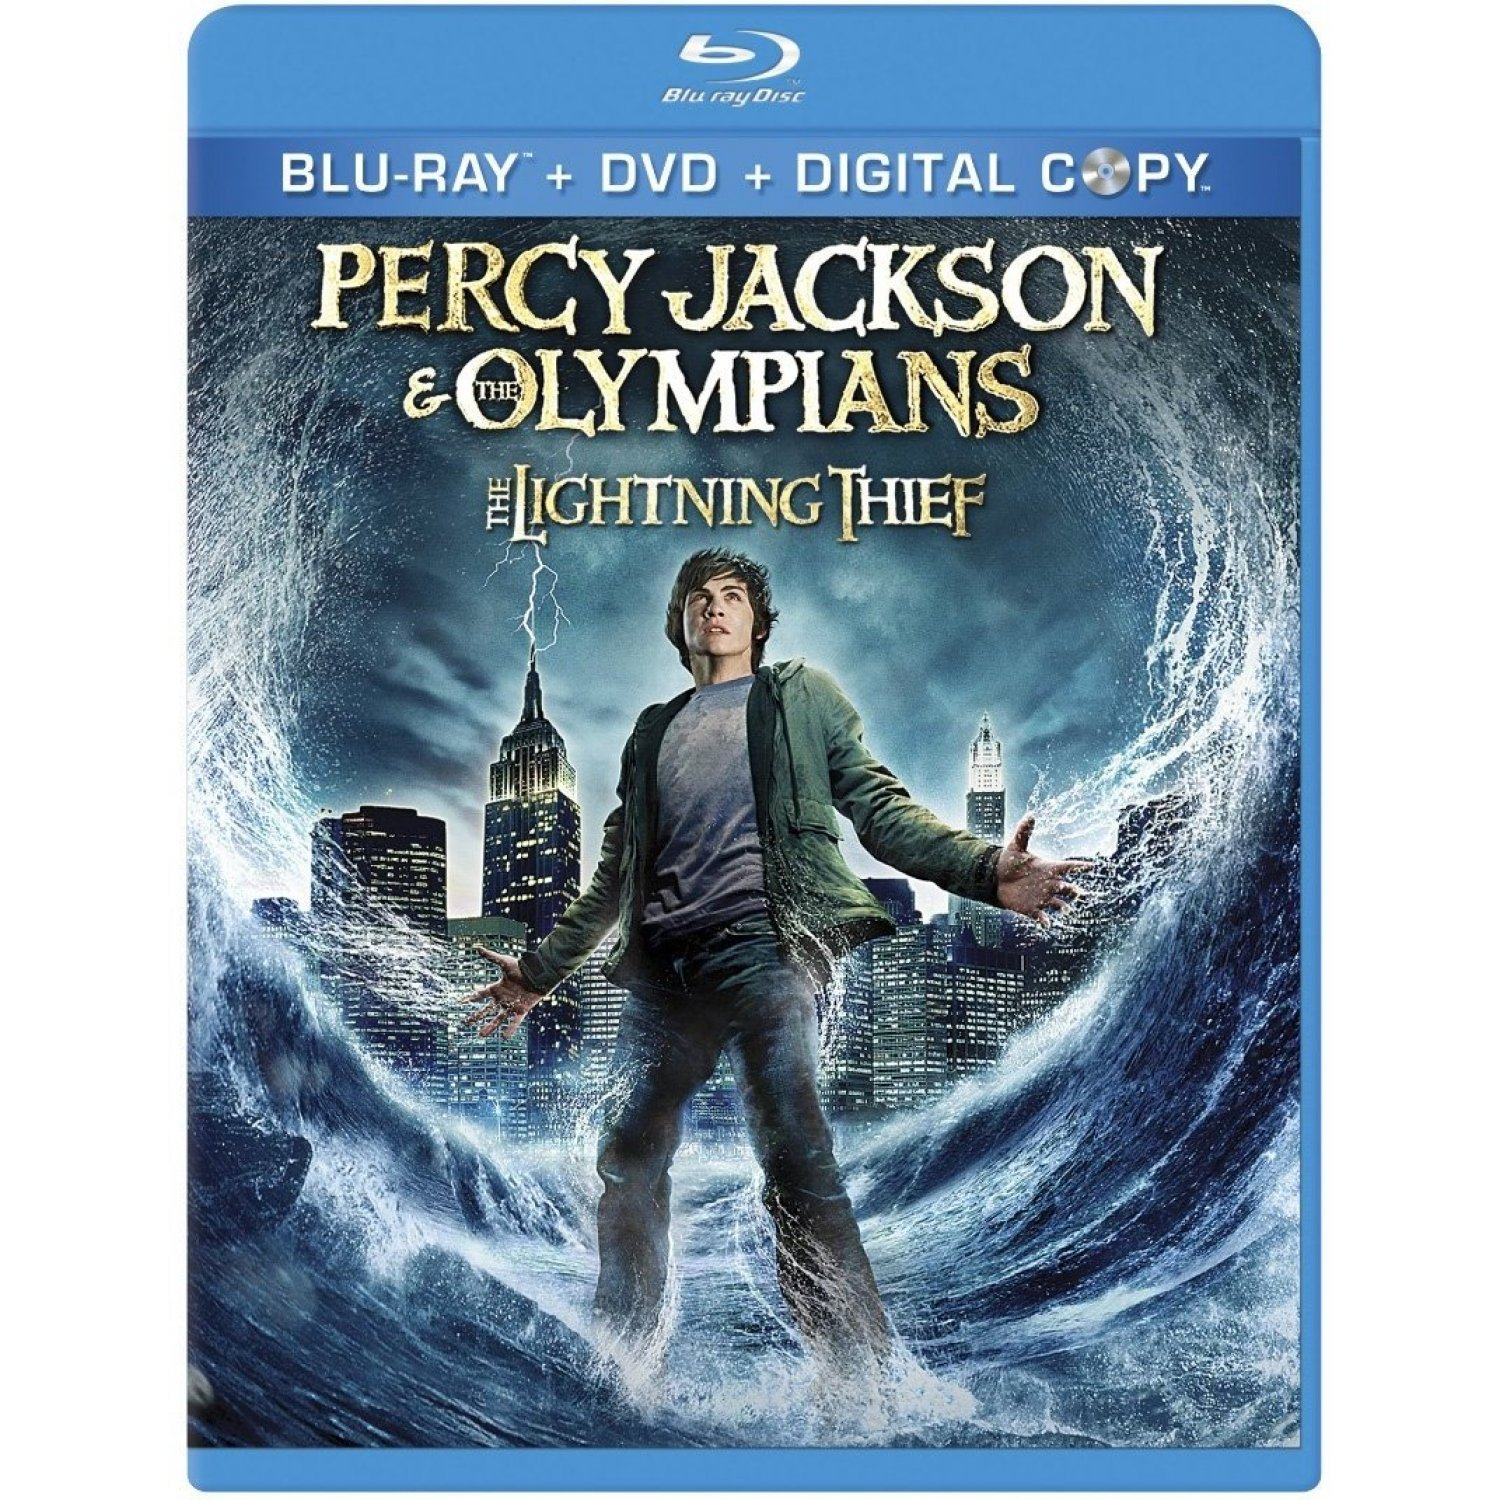 analysis of percy jackson and the olympians